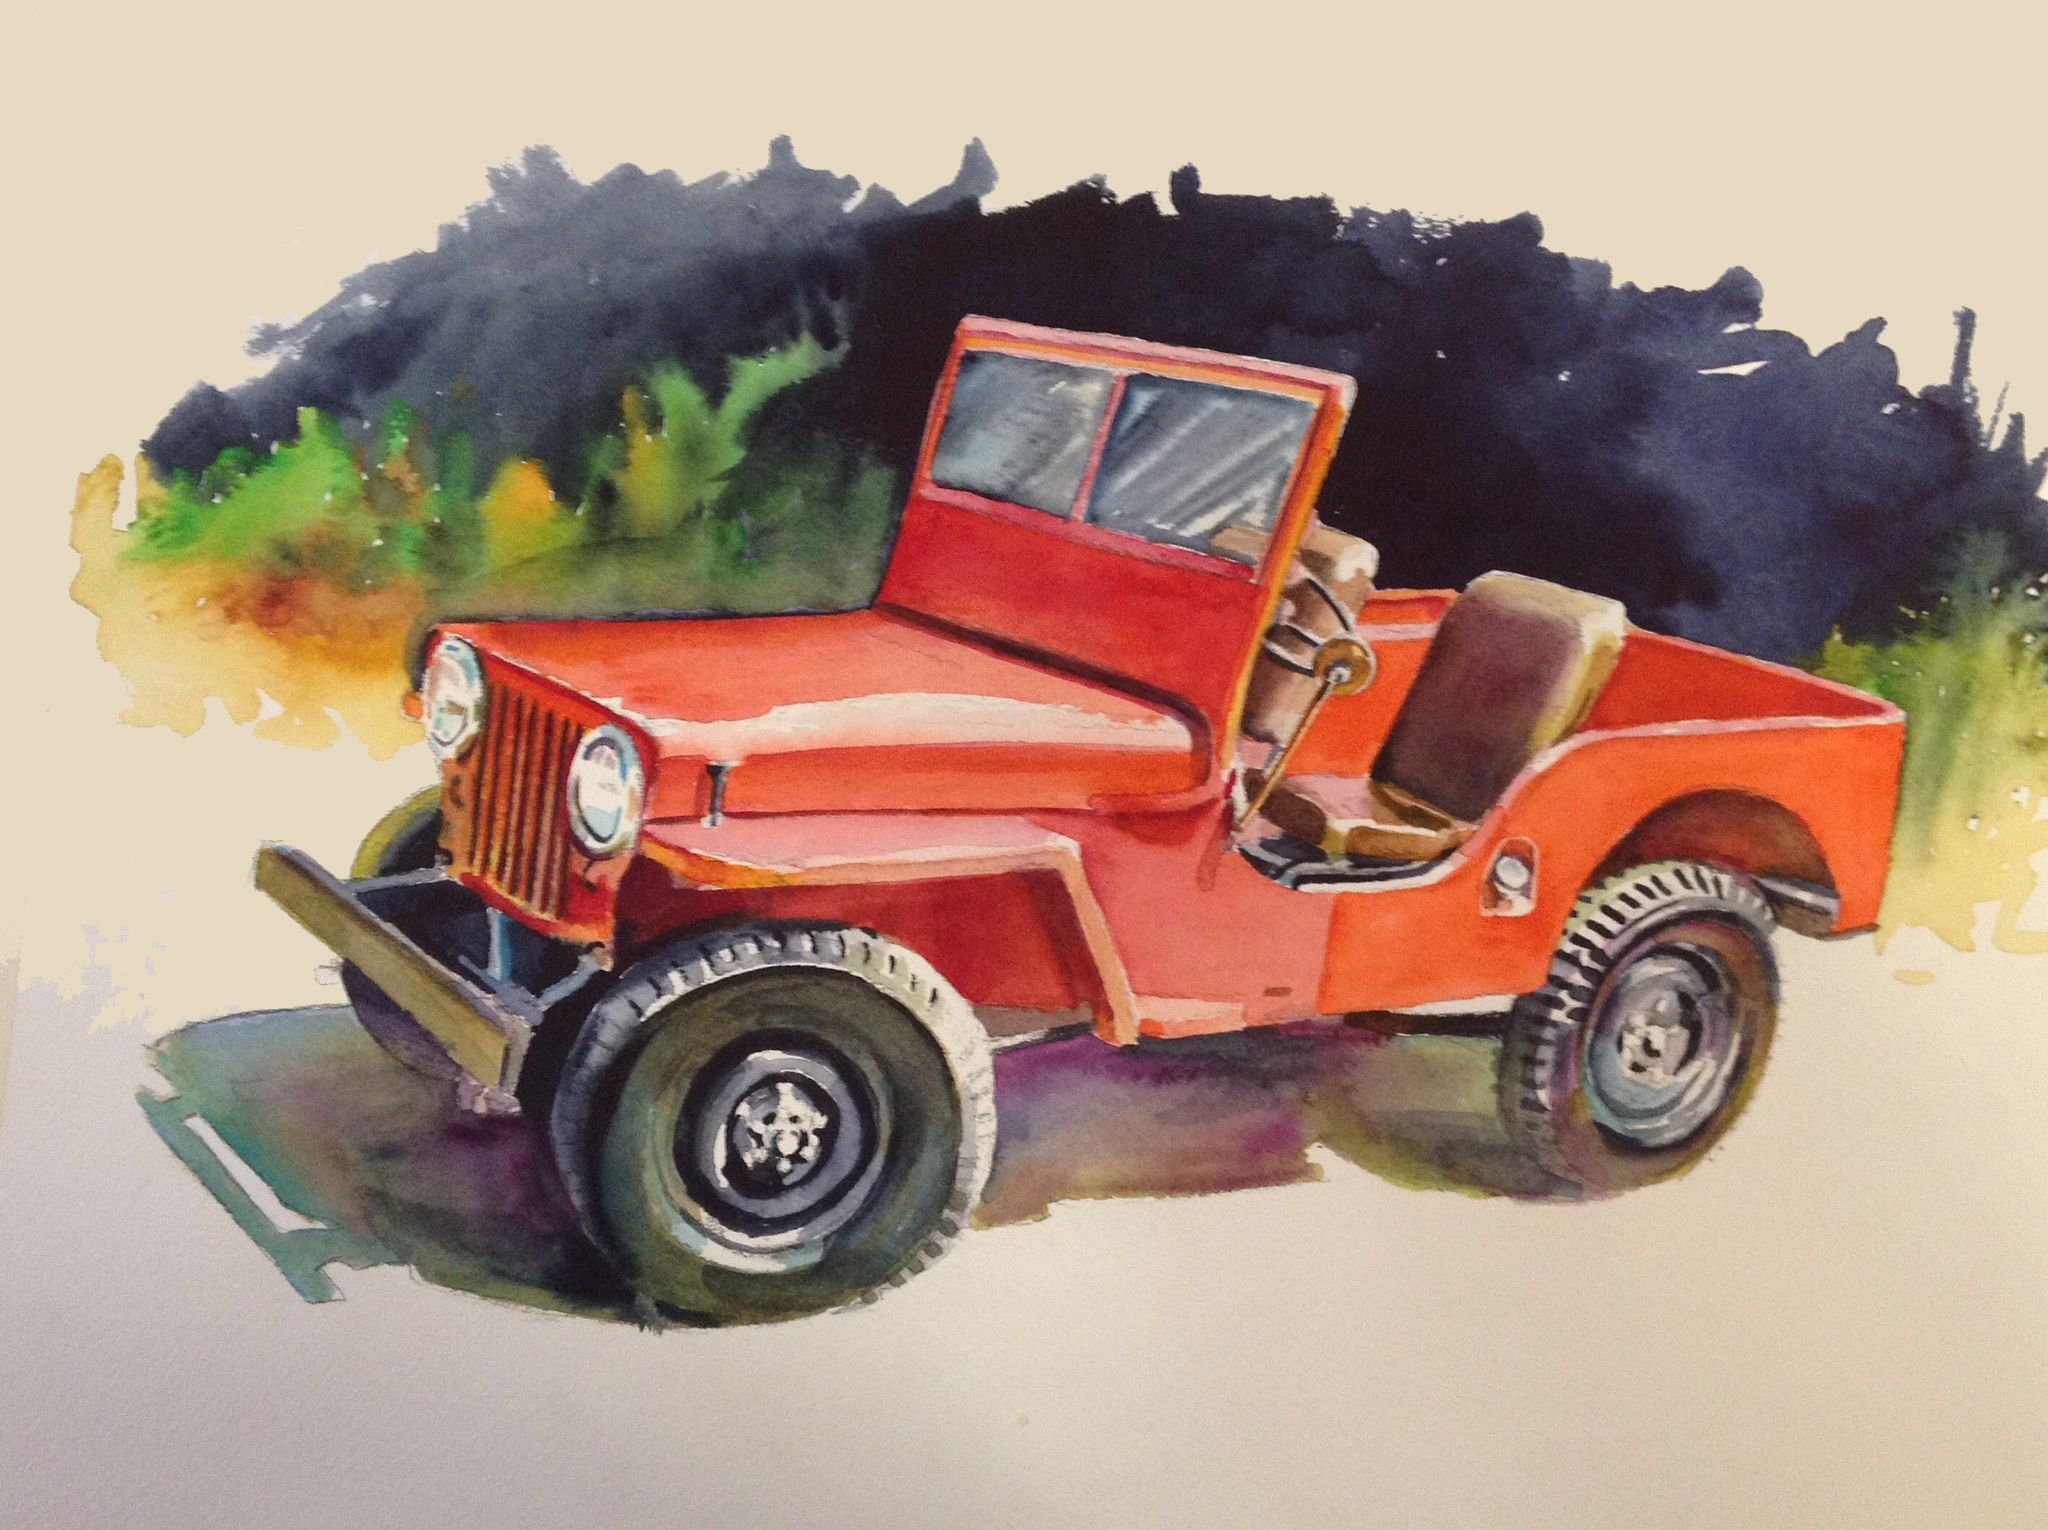 47 Jeep From My Recent Series Of Watercolor Sketches Of Old Cars